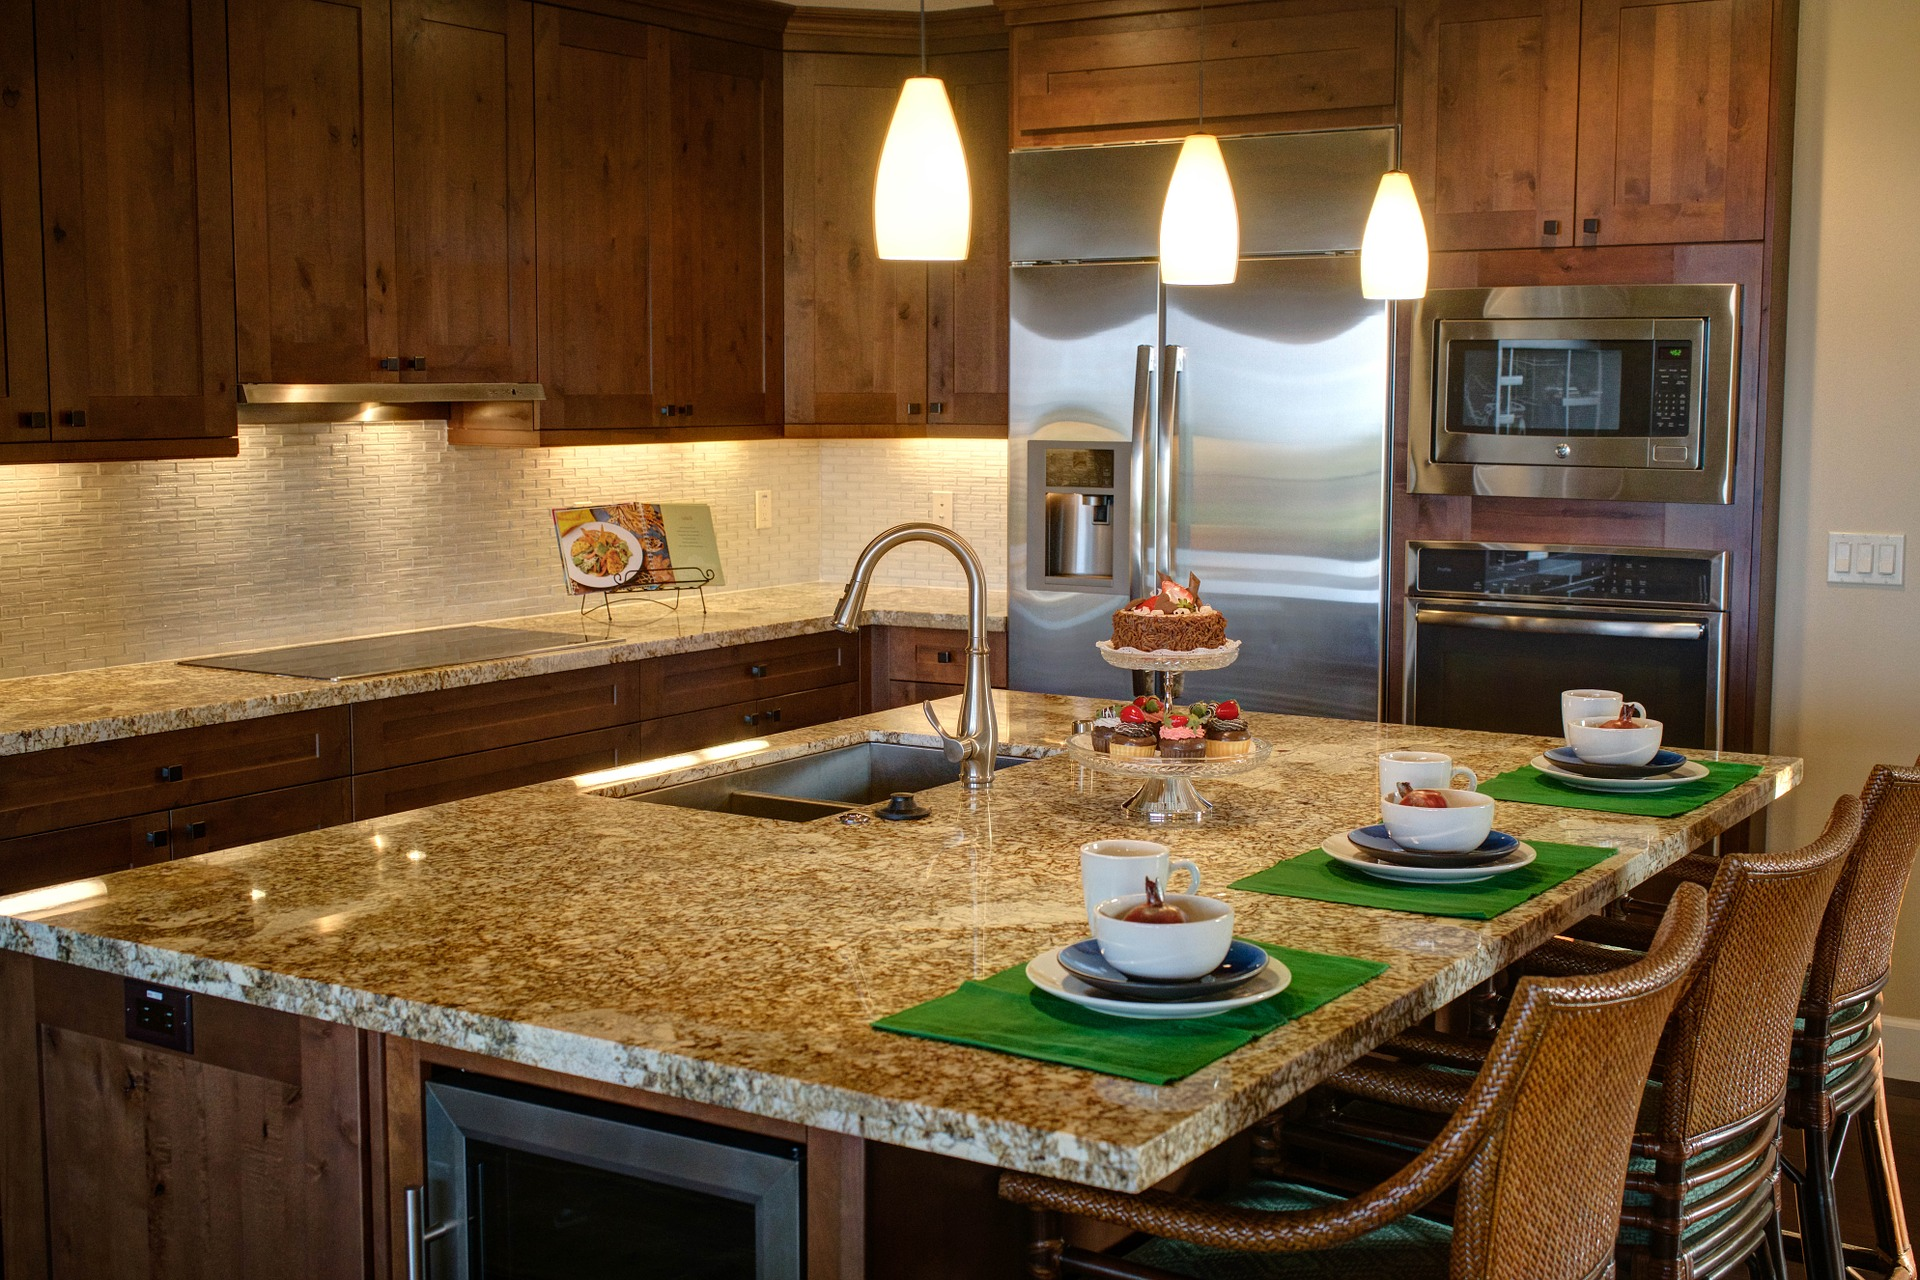 Picking out the best kitchen hardware for your Mars, PA home remodel